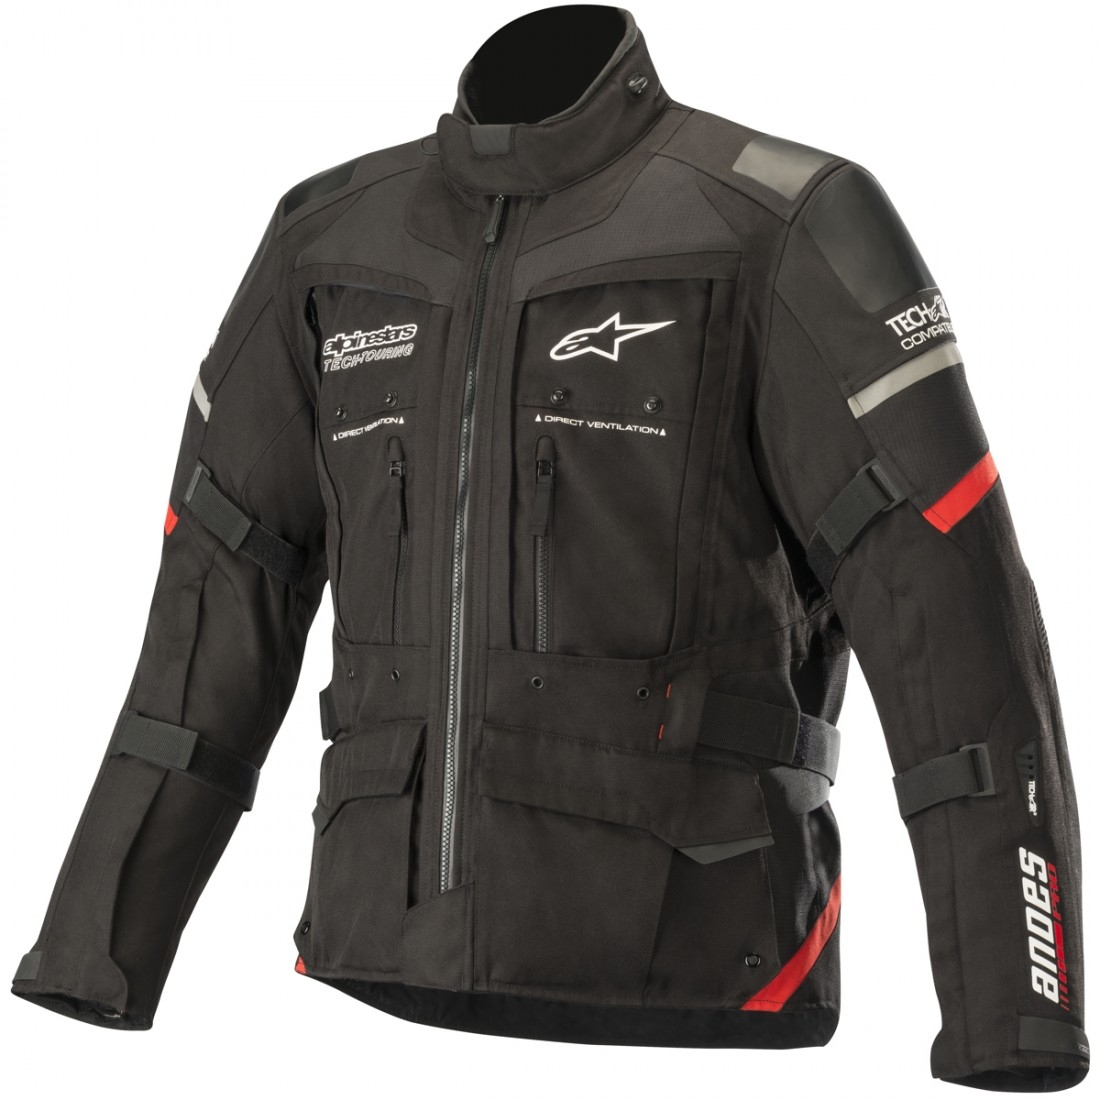 Alpinestars Motorcycle Jacket >> Alpinestars Andes Pro Drystar For Tech Air Black Red Jacket Motocard